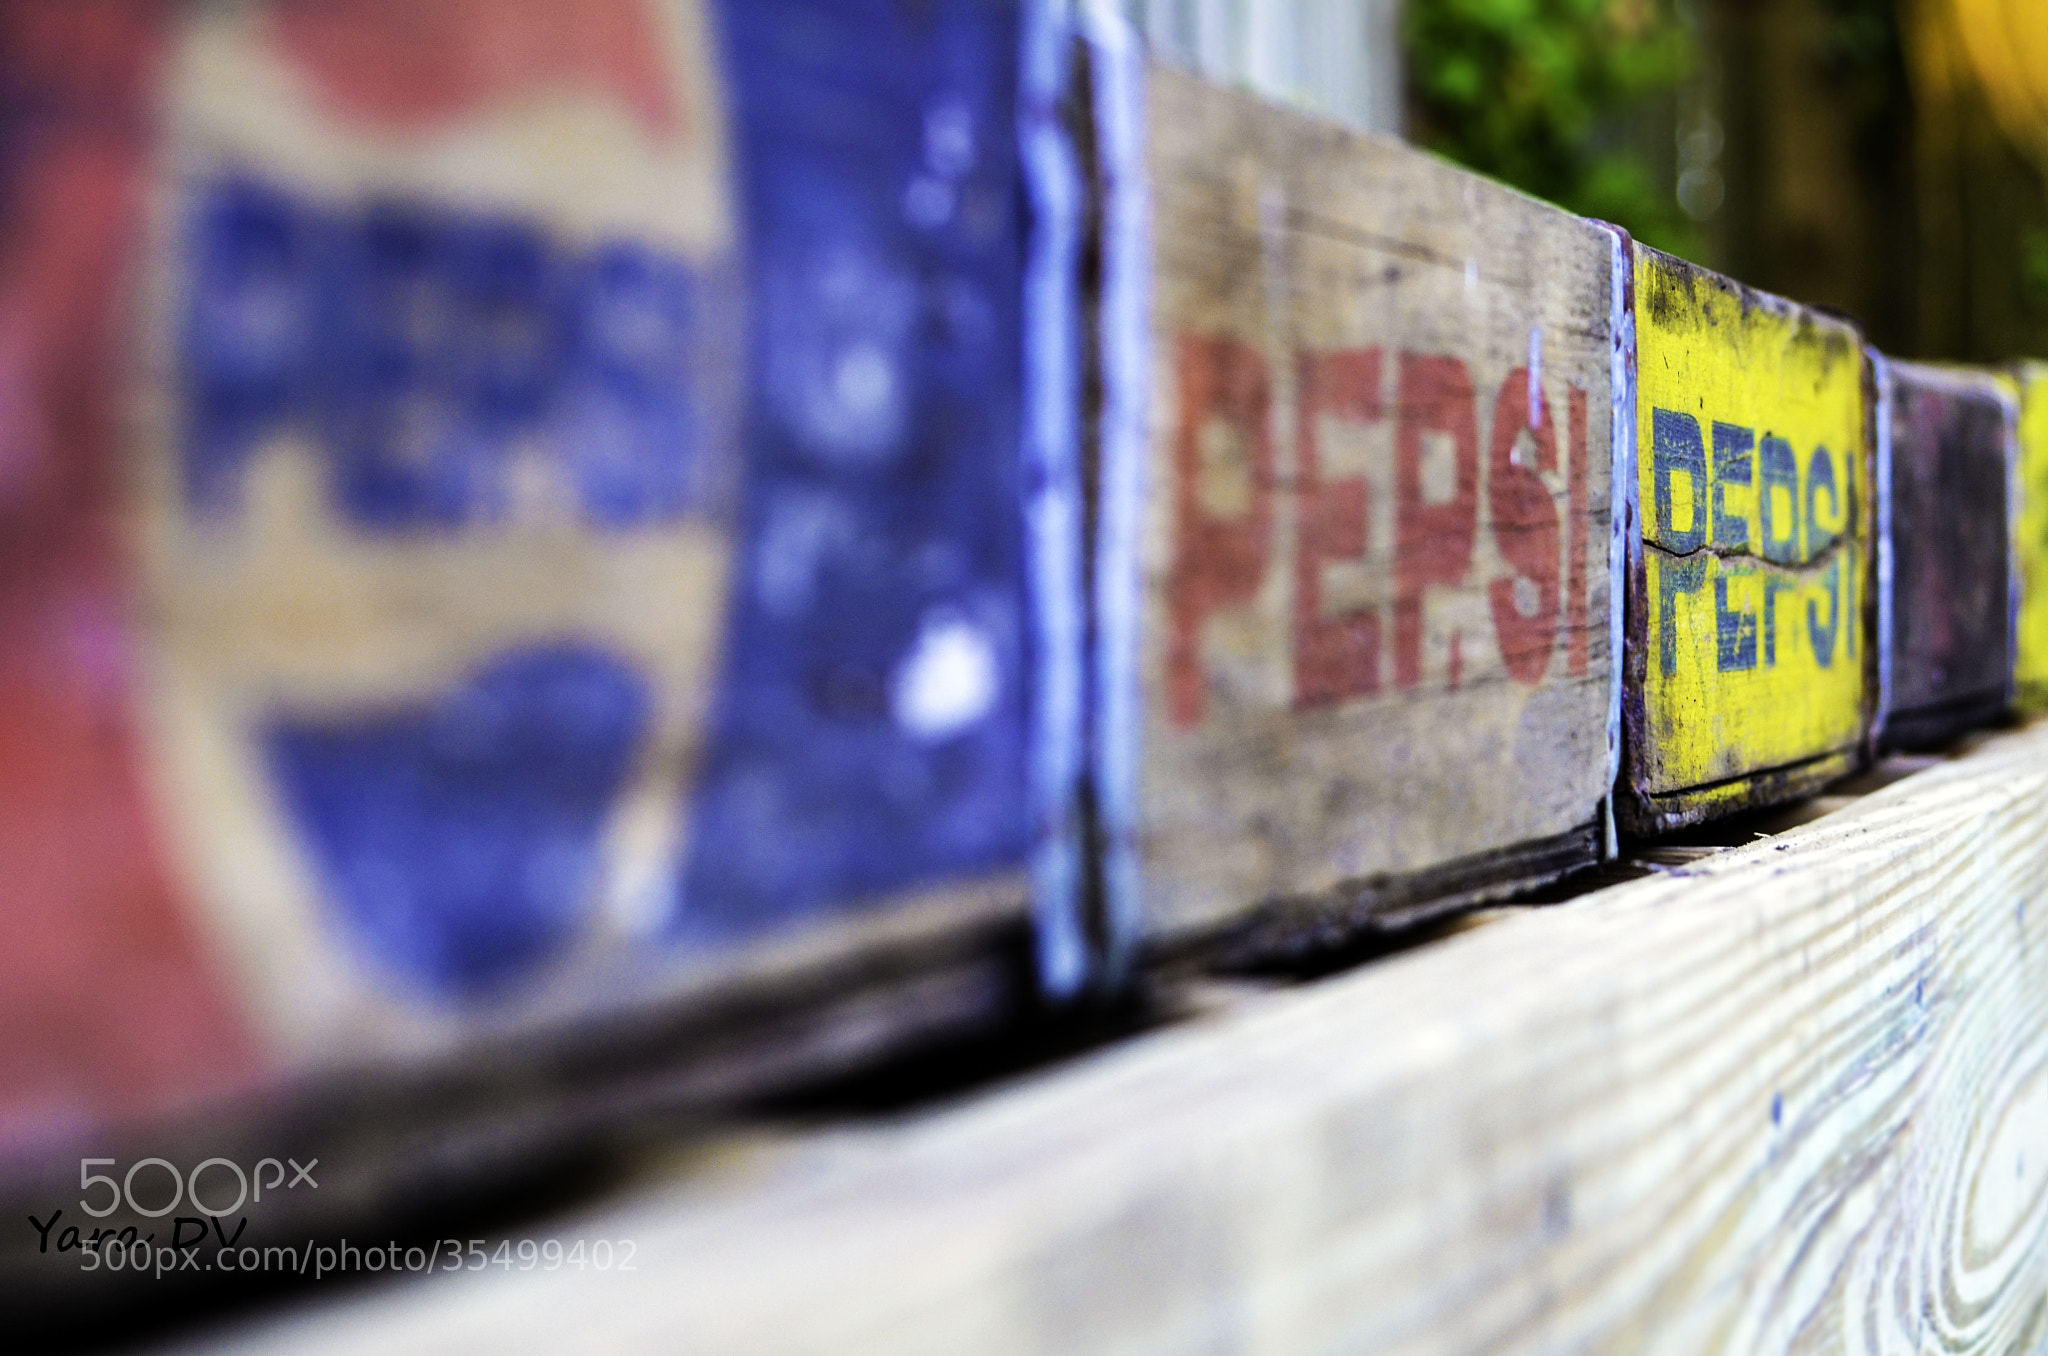 Photograph Vintage Pepsi by Yara Del Valle on 500px